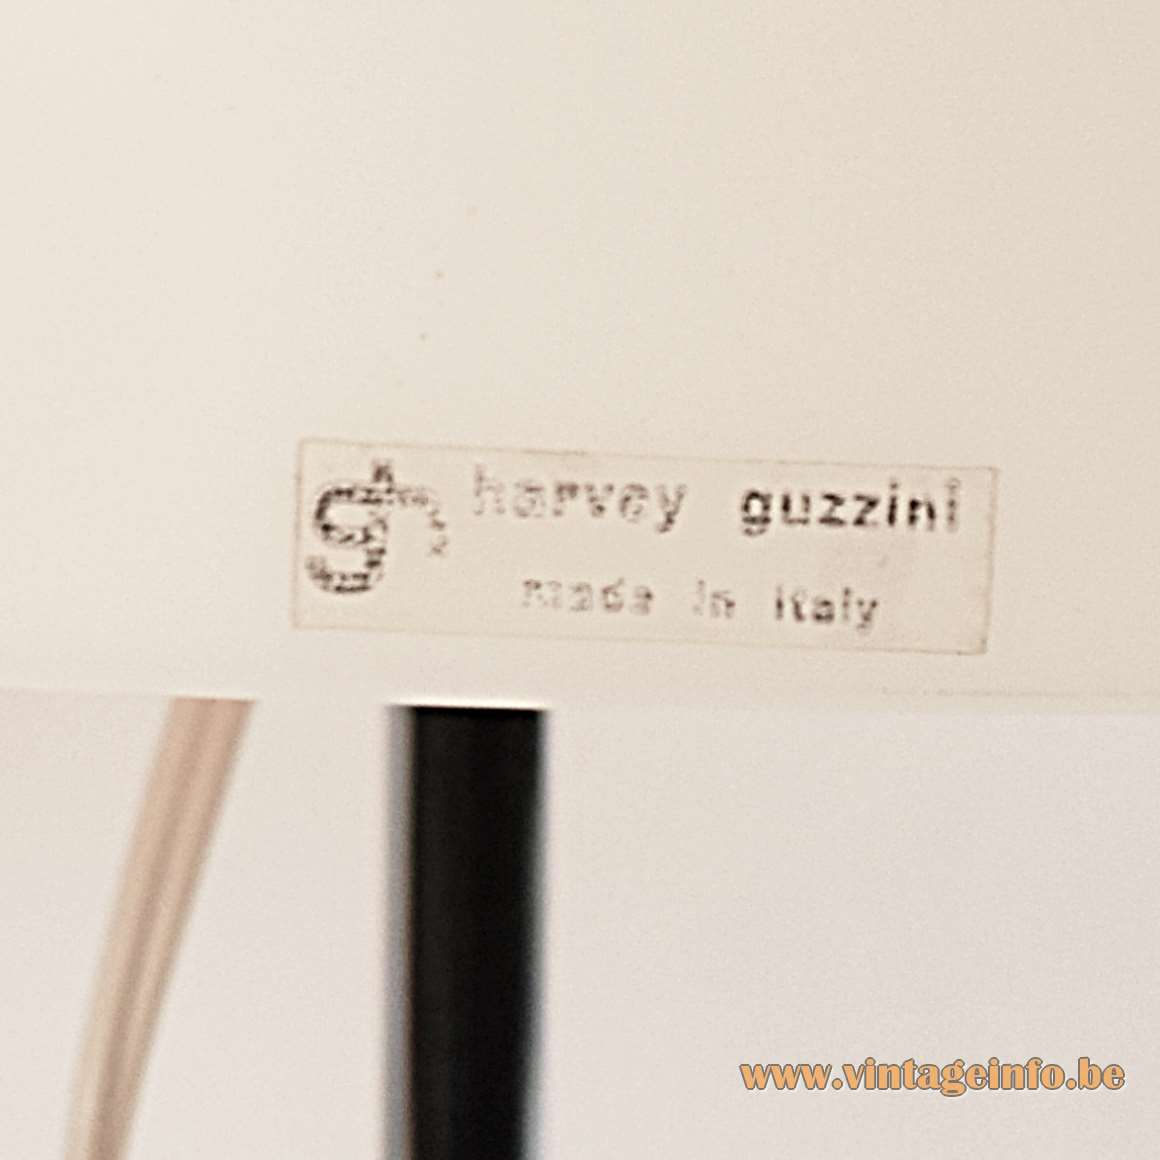 Harvey Guzzini Faro Table Lamps - original label